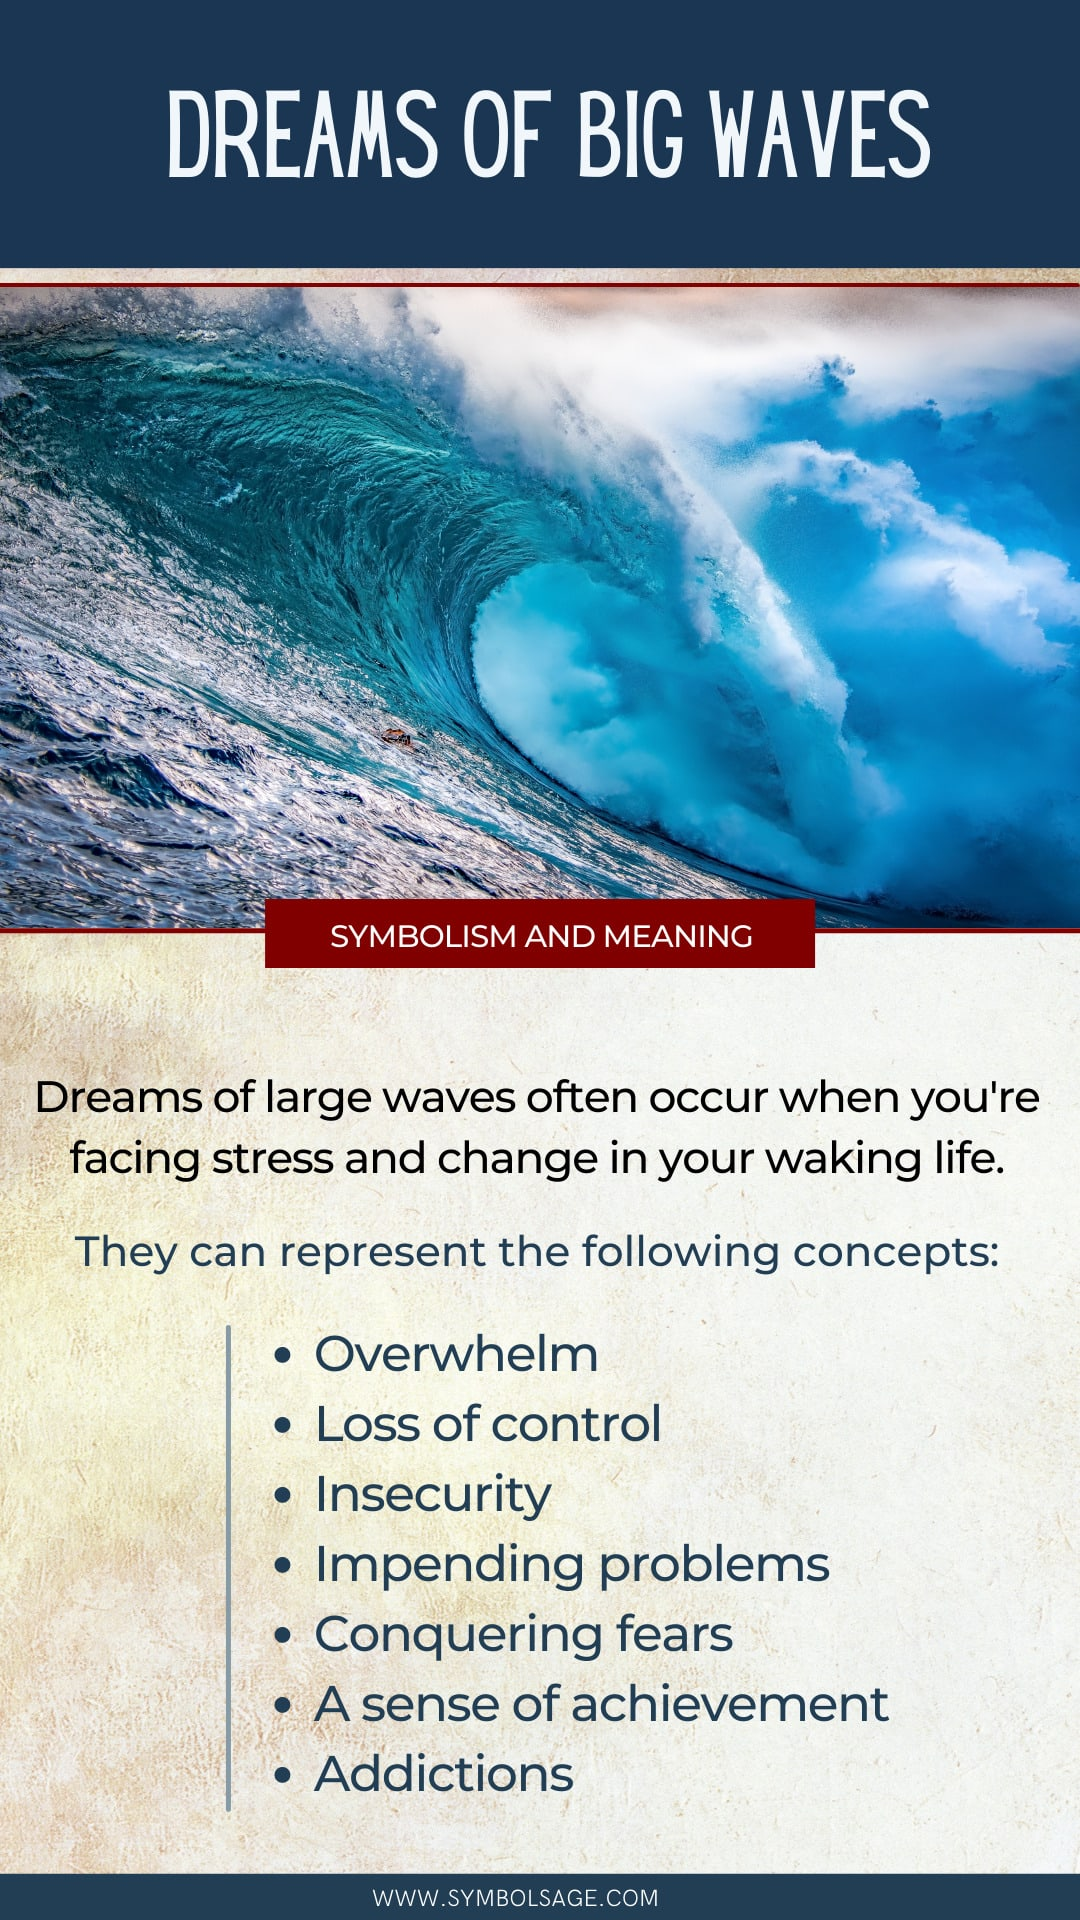 Big waves dream meaning